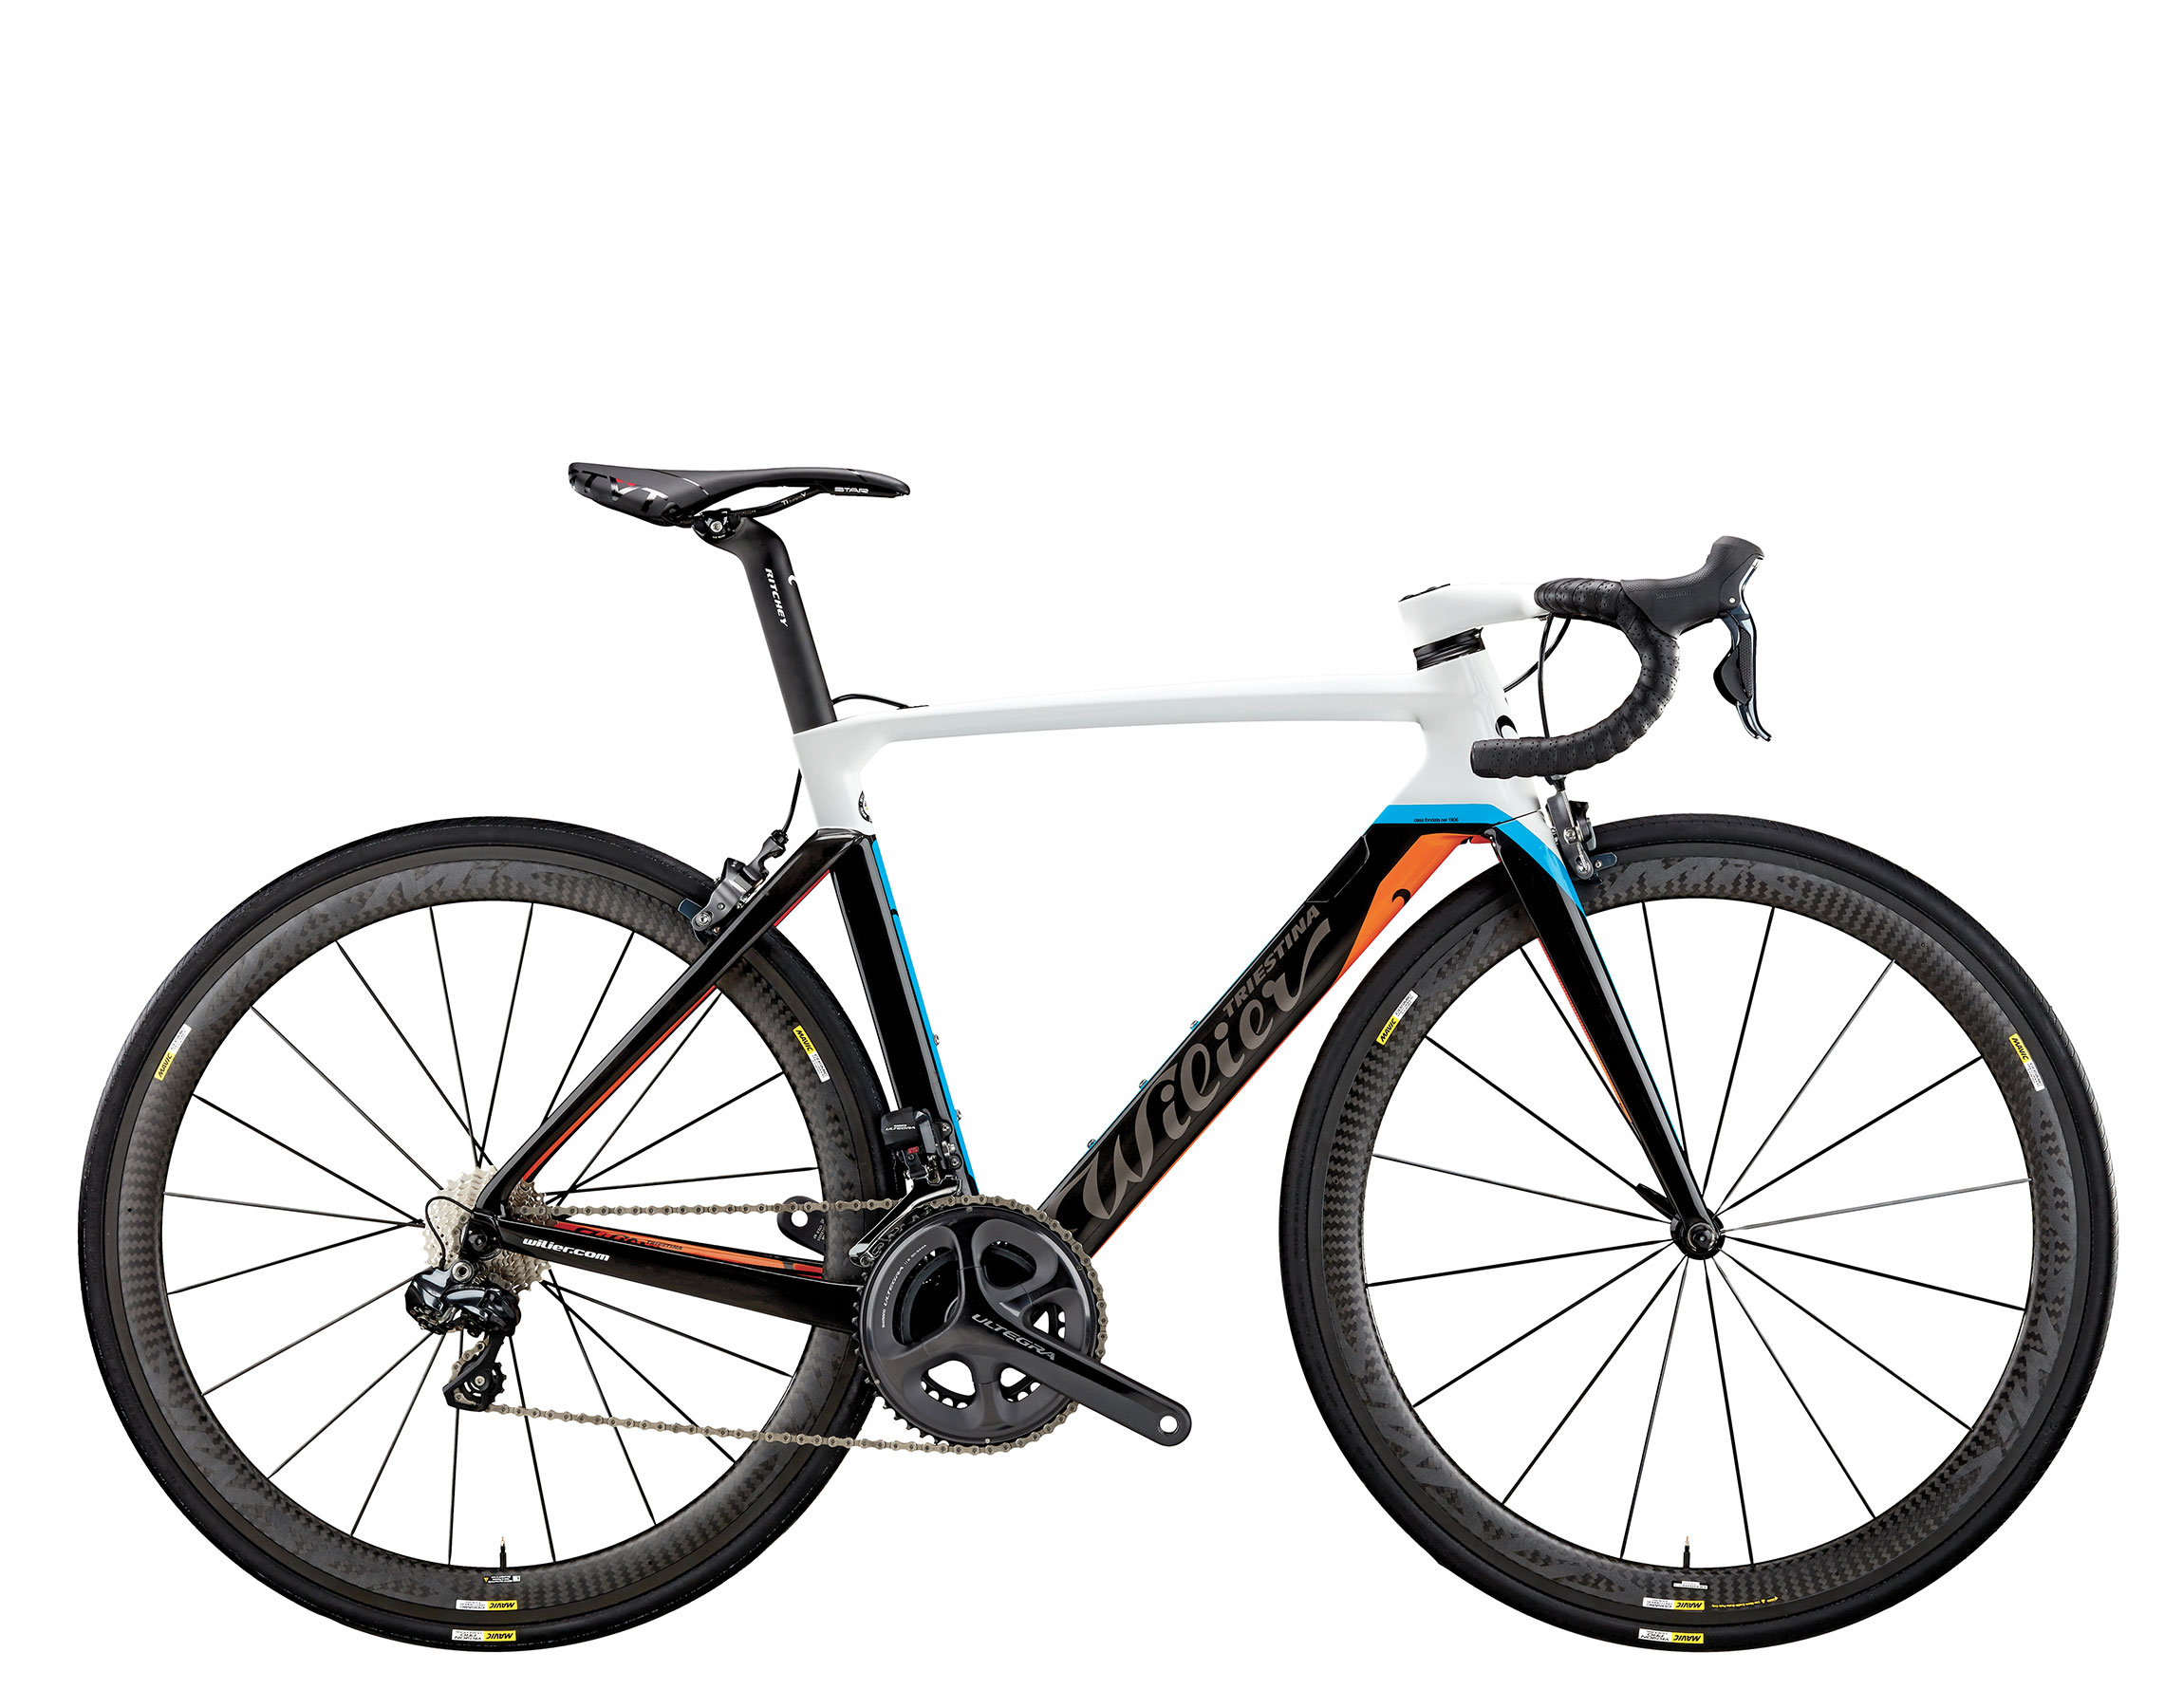 The new integrated aero bar ALABARDA allows you to run shifter cables inside the frame.